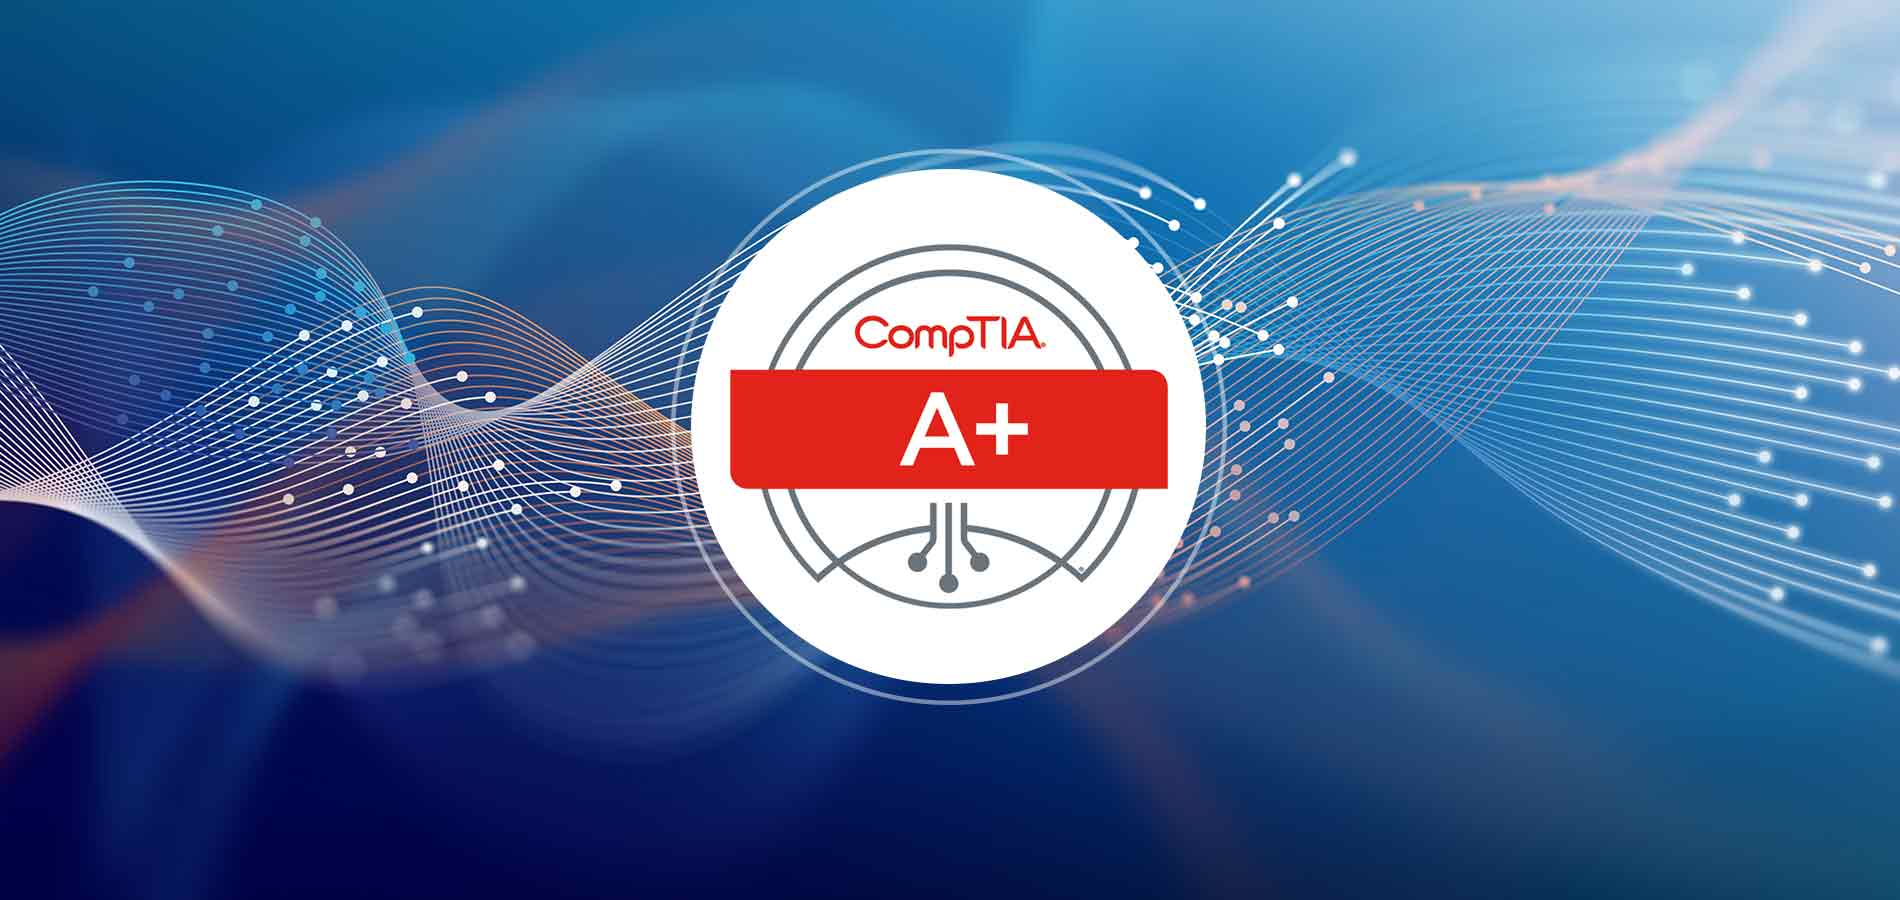 What can I do with a CompTIA A+ Certification?